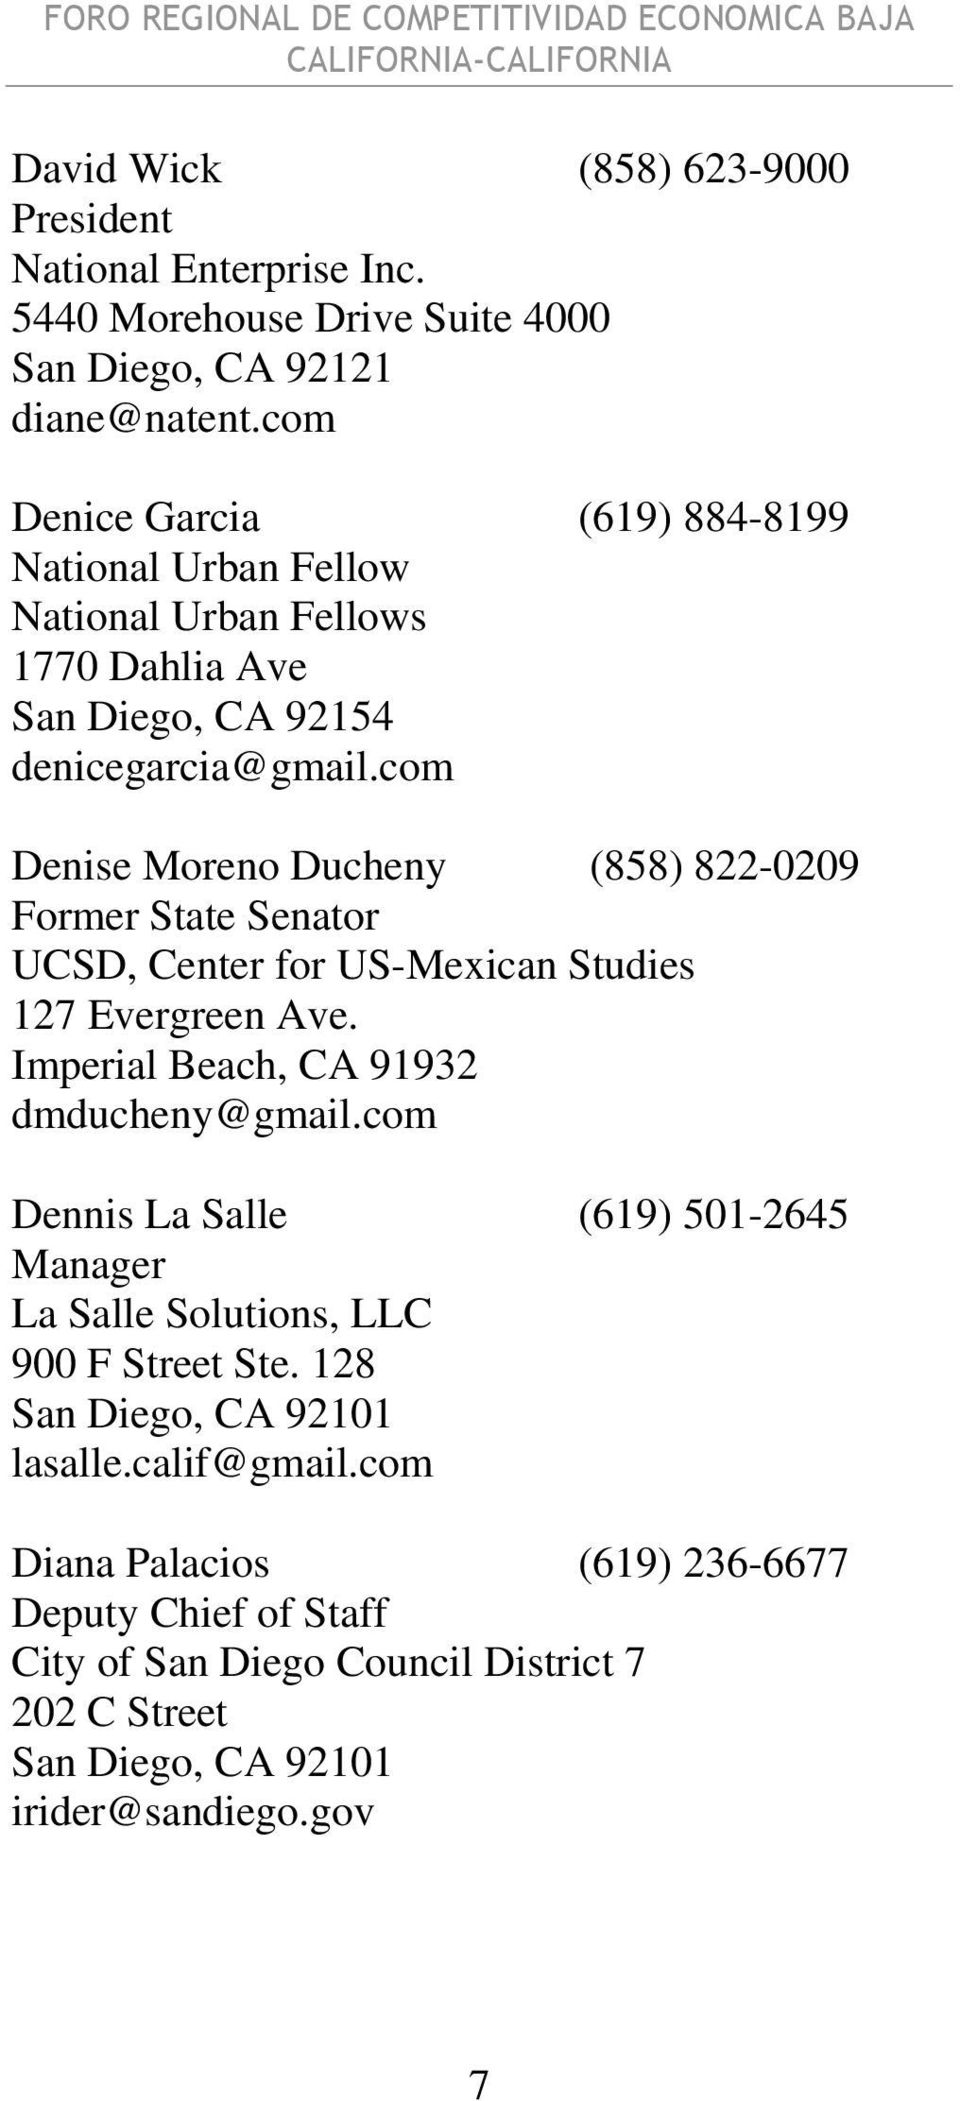 com Denise Moreno Ducheny (858) 822-0209 Former State Senator UCSD, Center for US-Mexican Studies 127 Evergreen Ave. Imperial Beach, CA 91932 dmducheny@gmail.